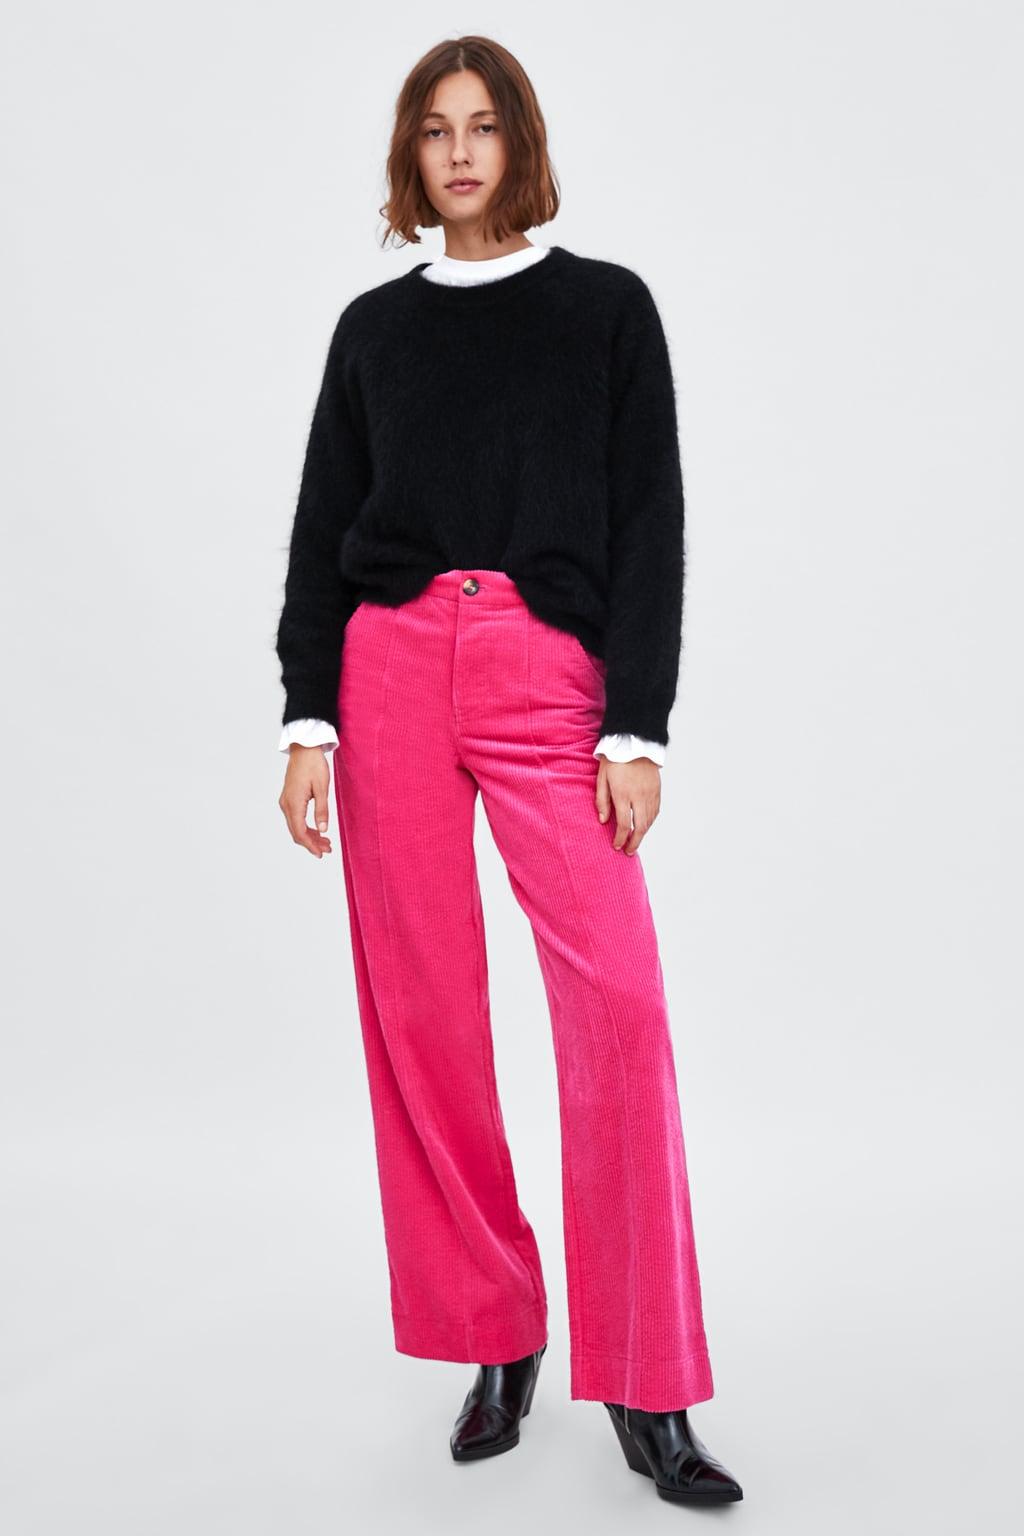 Velveteen Pants By Zara